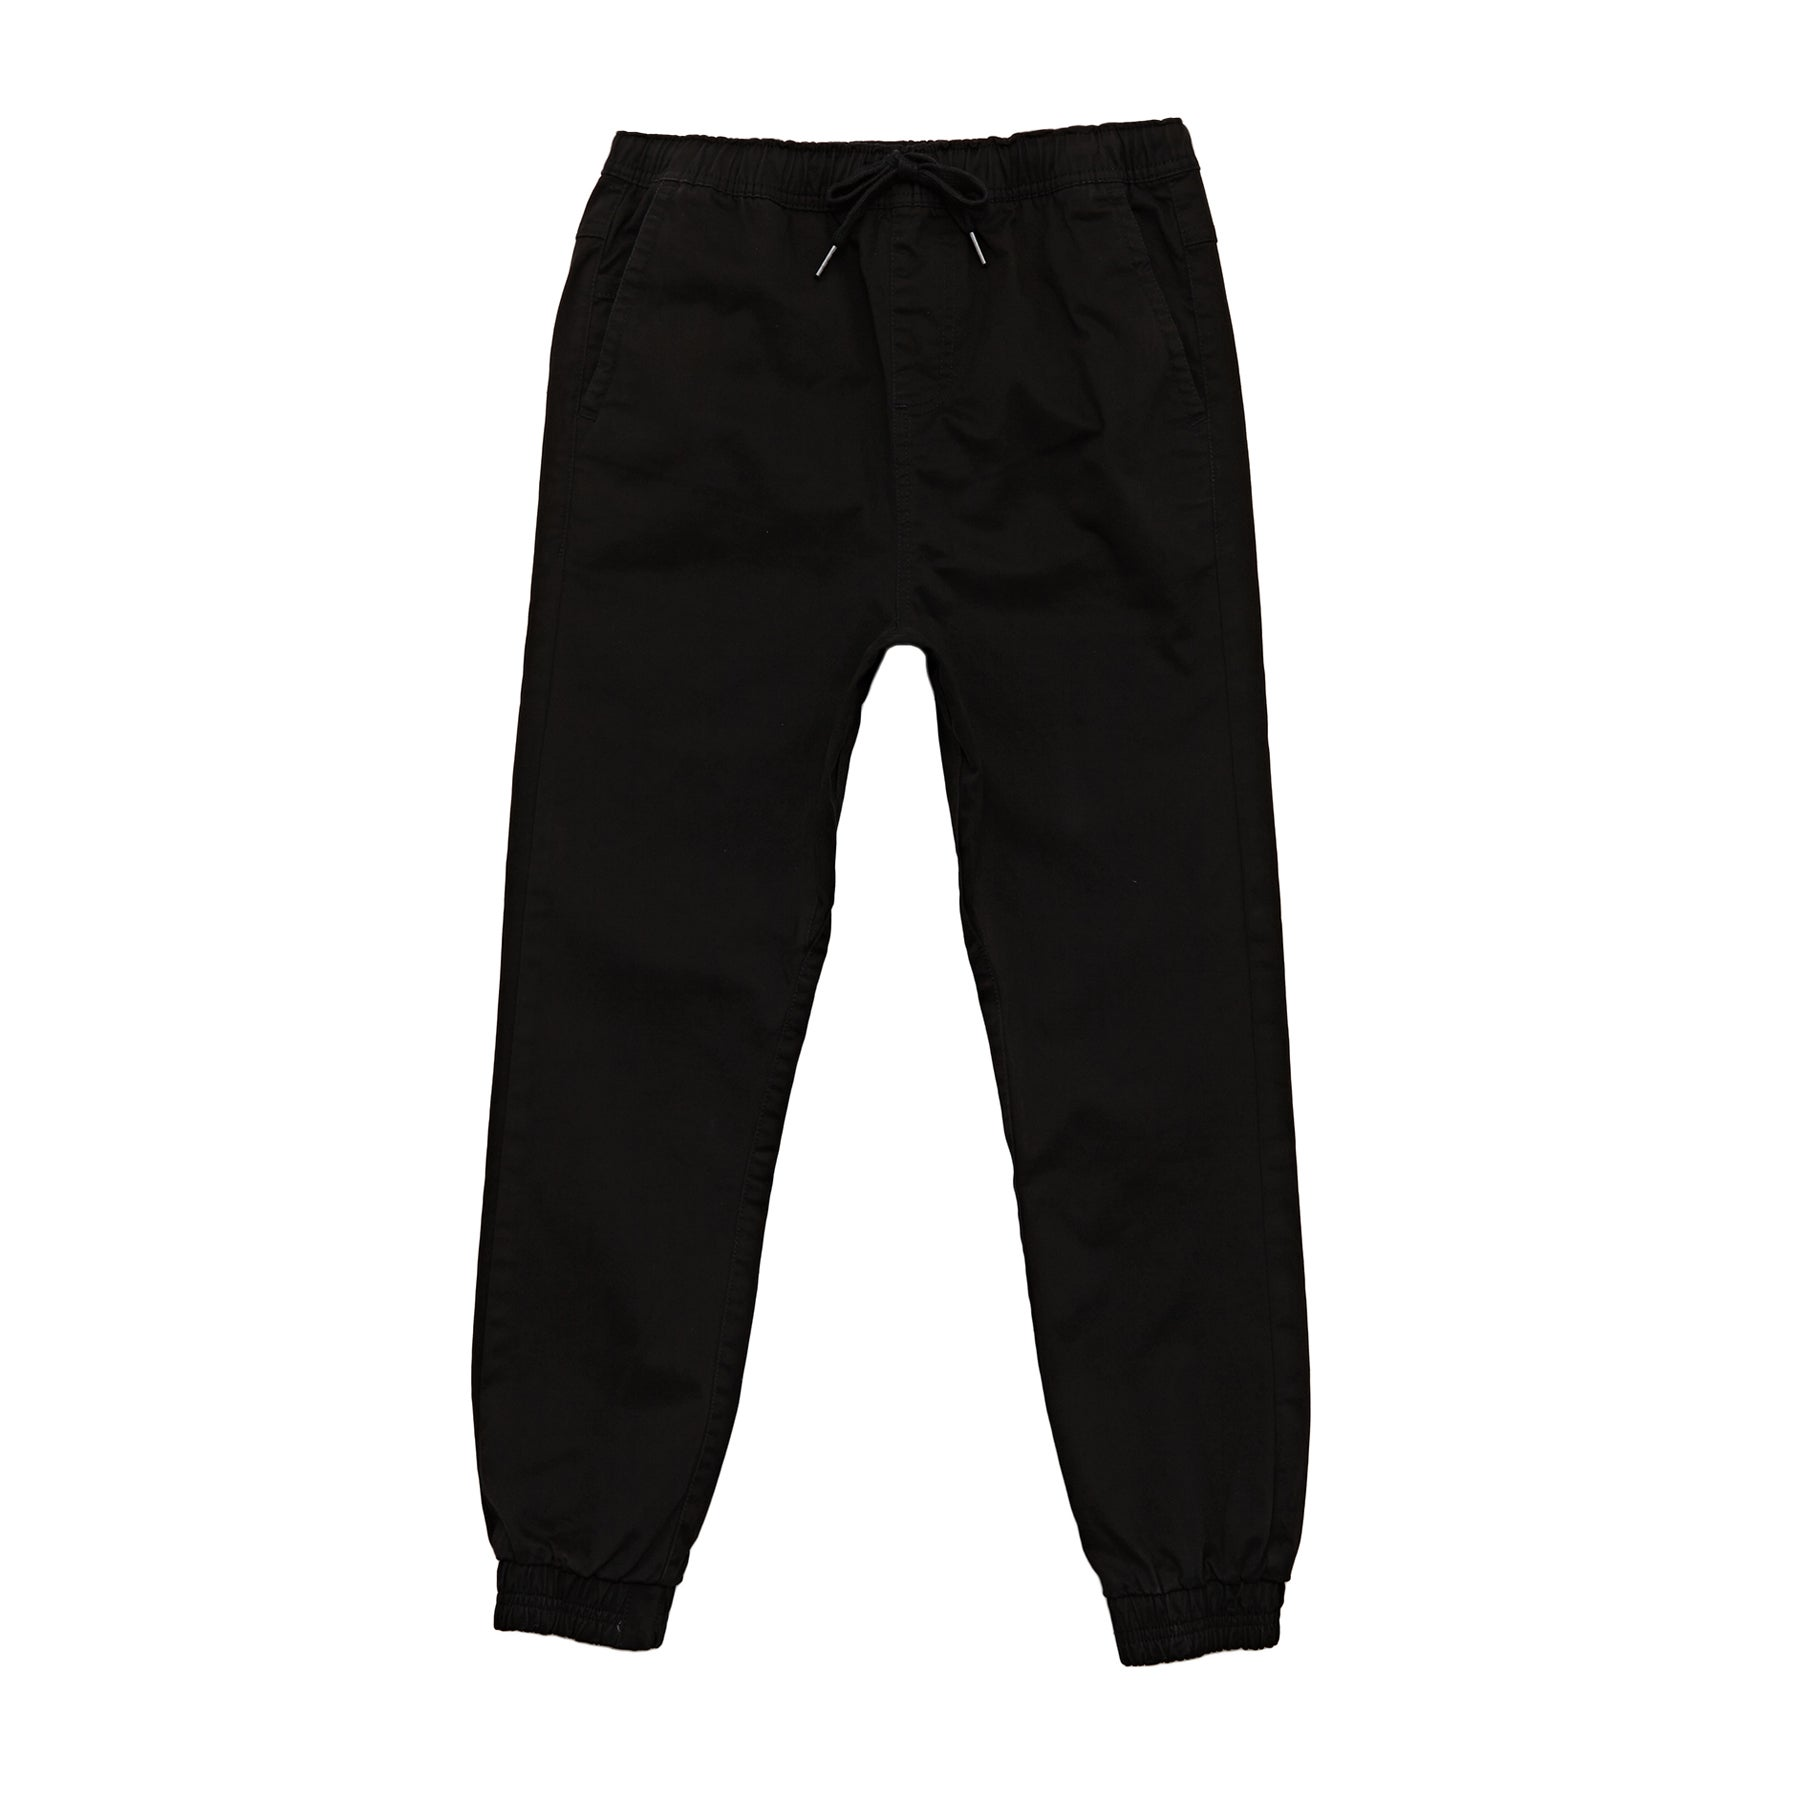 SWELL Cartel Boys Chino Pant - Black